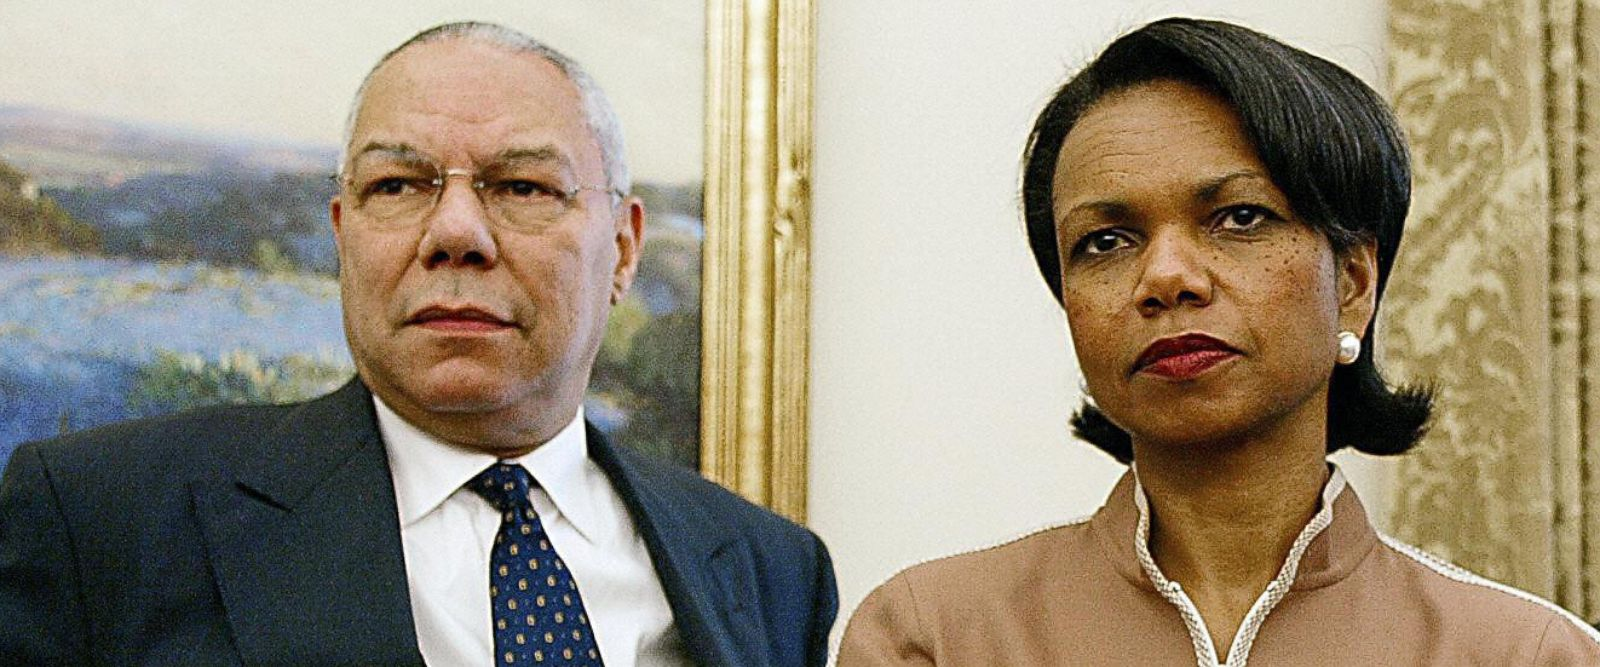 PHOTO: US Secretary of State Colin Powell and National Security Advisor Condoleezza Rice look on as US President George W. Bush meets with Chilean President Ricardo Lagos in the Oval Office of the White House 19 July 2004 in Washington, DC.